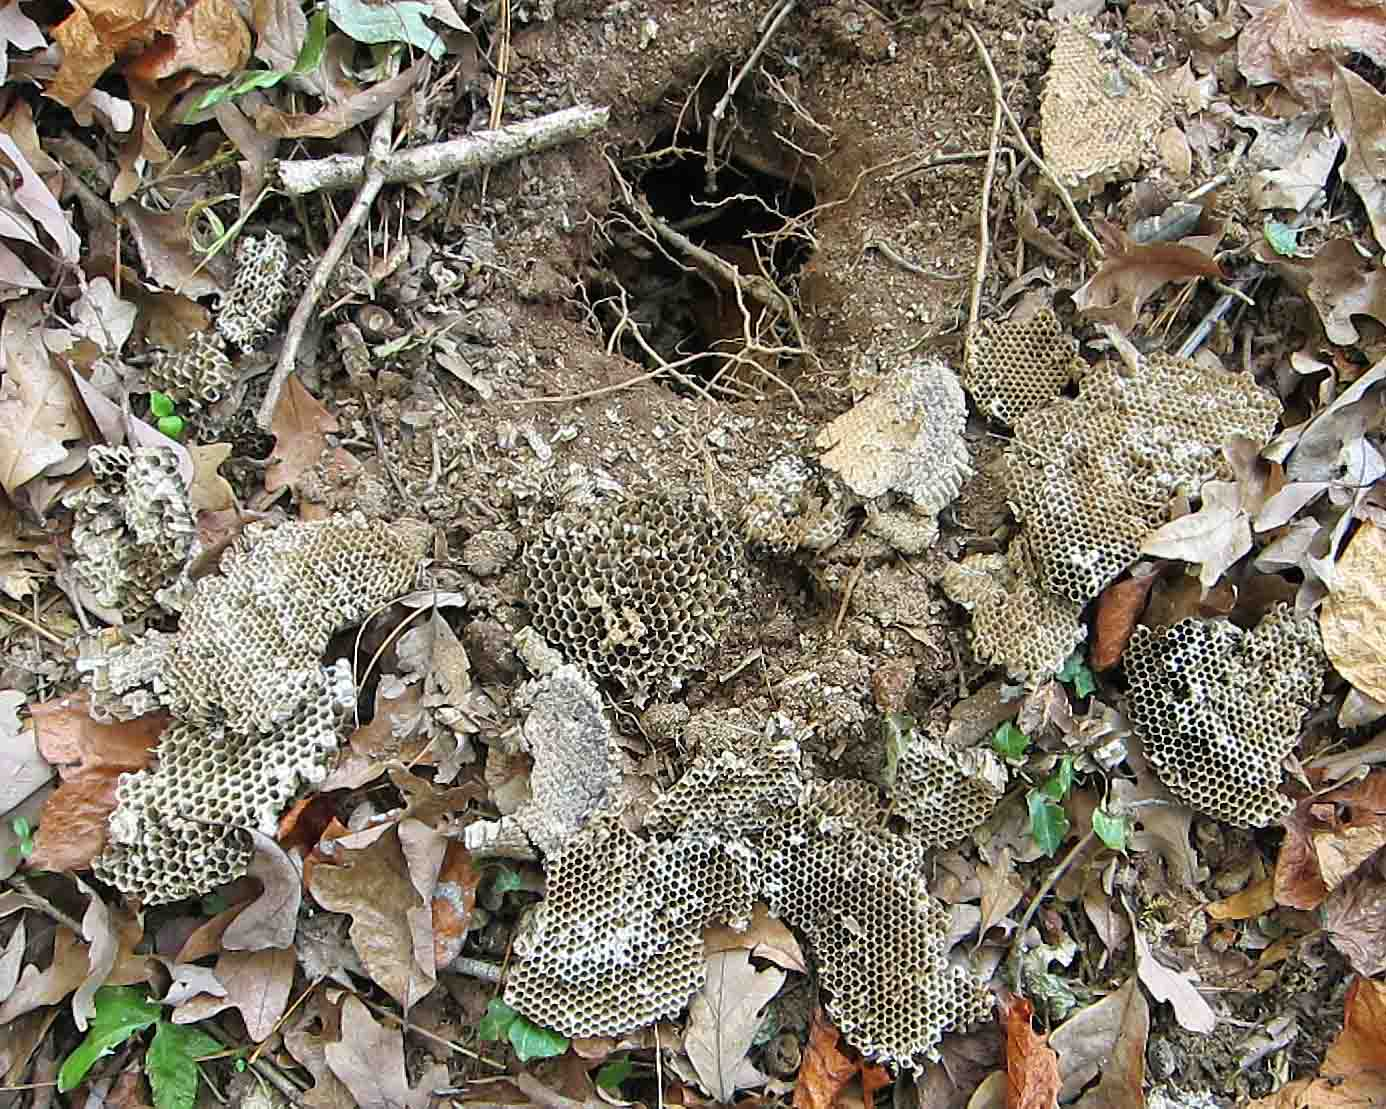 Exploring Nature in NC: Yellow Jacket Nest